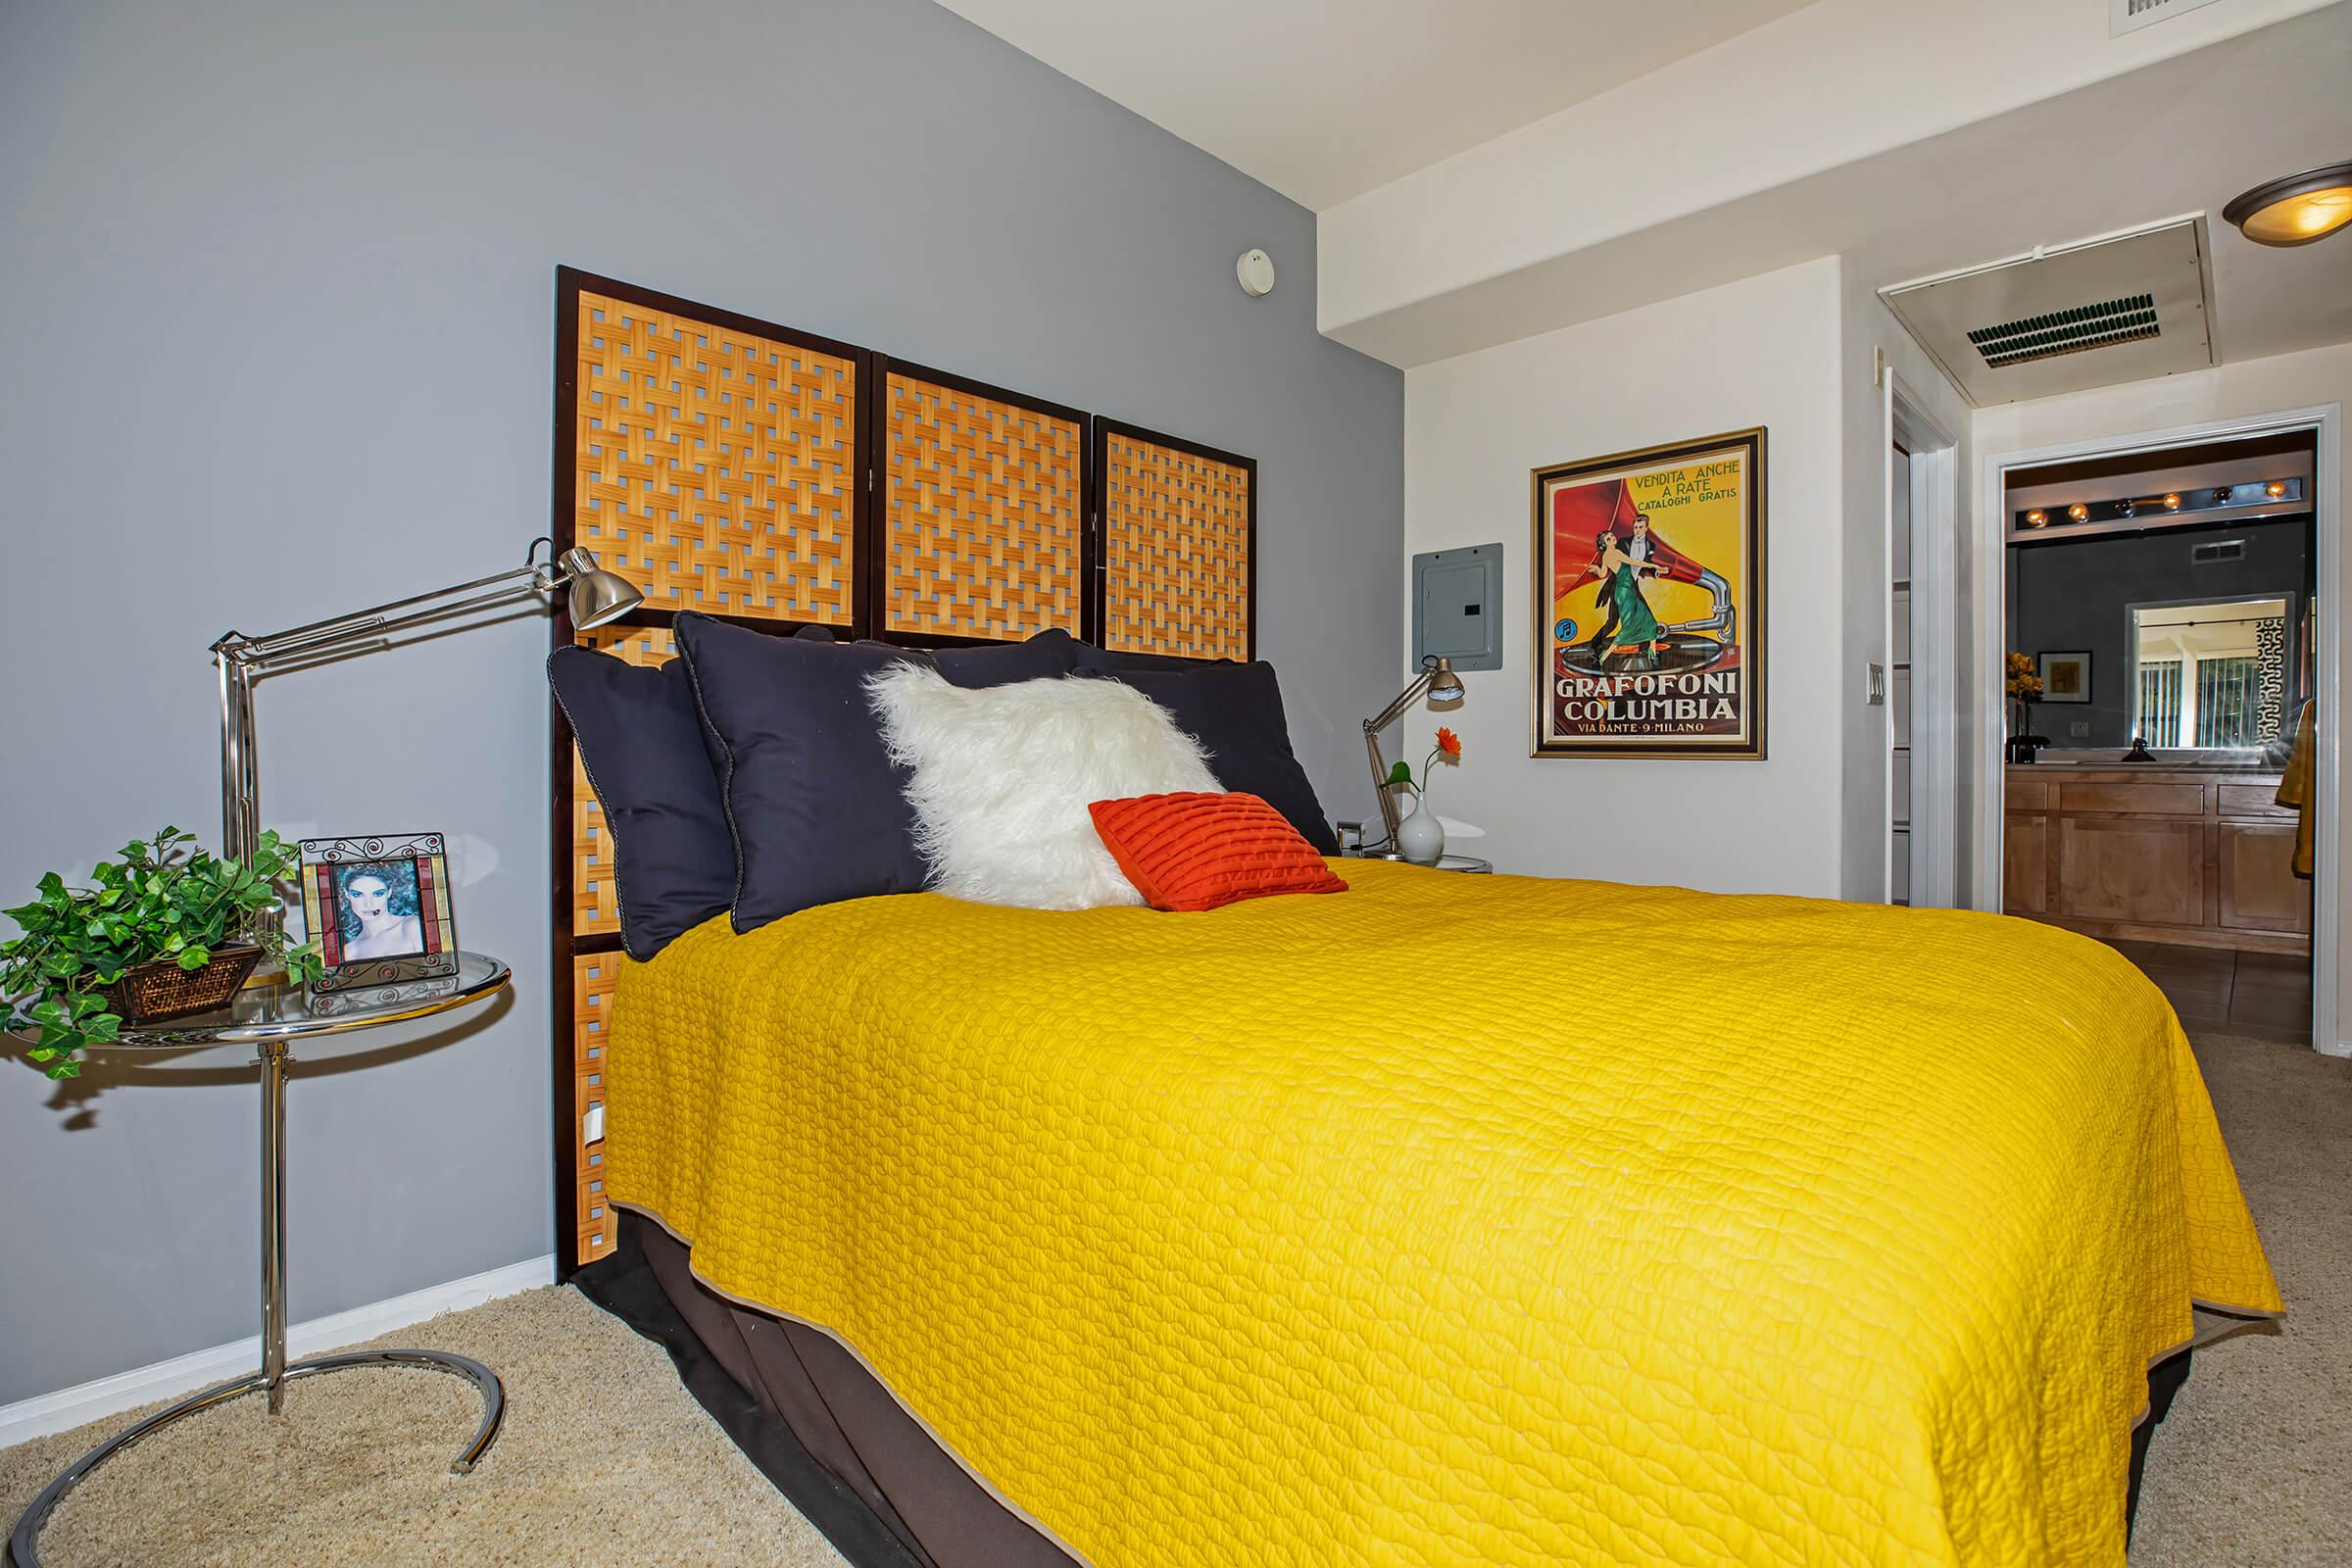 a yellow bed in a room